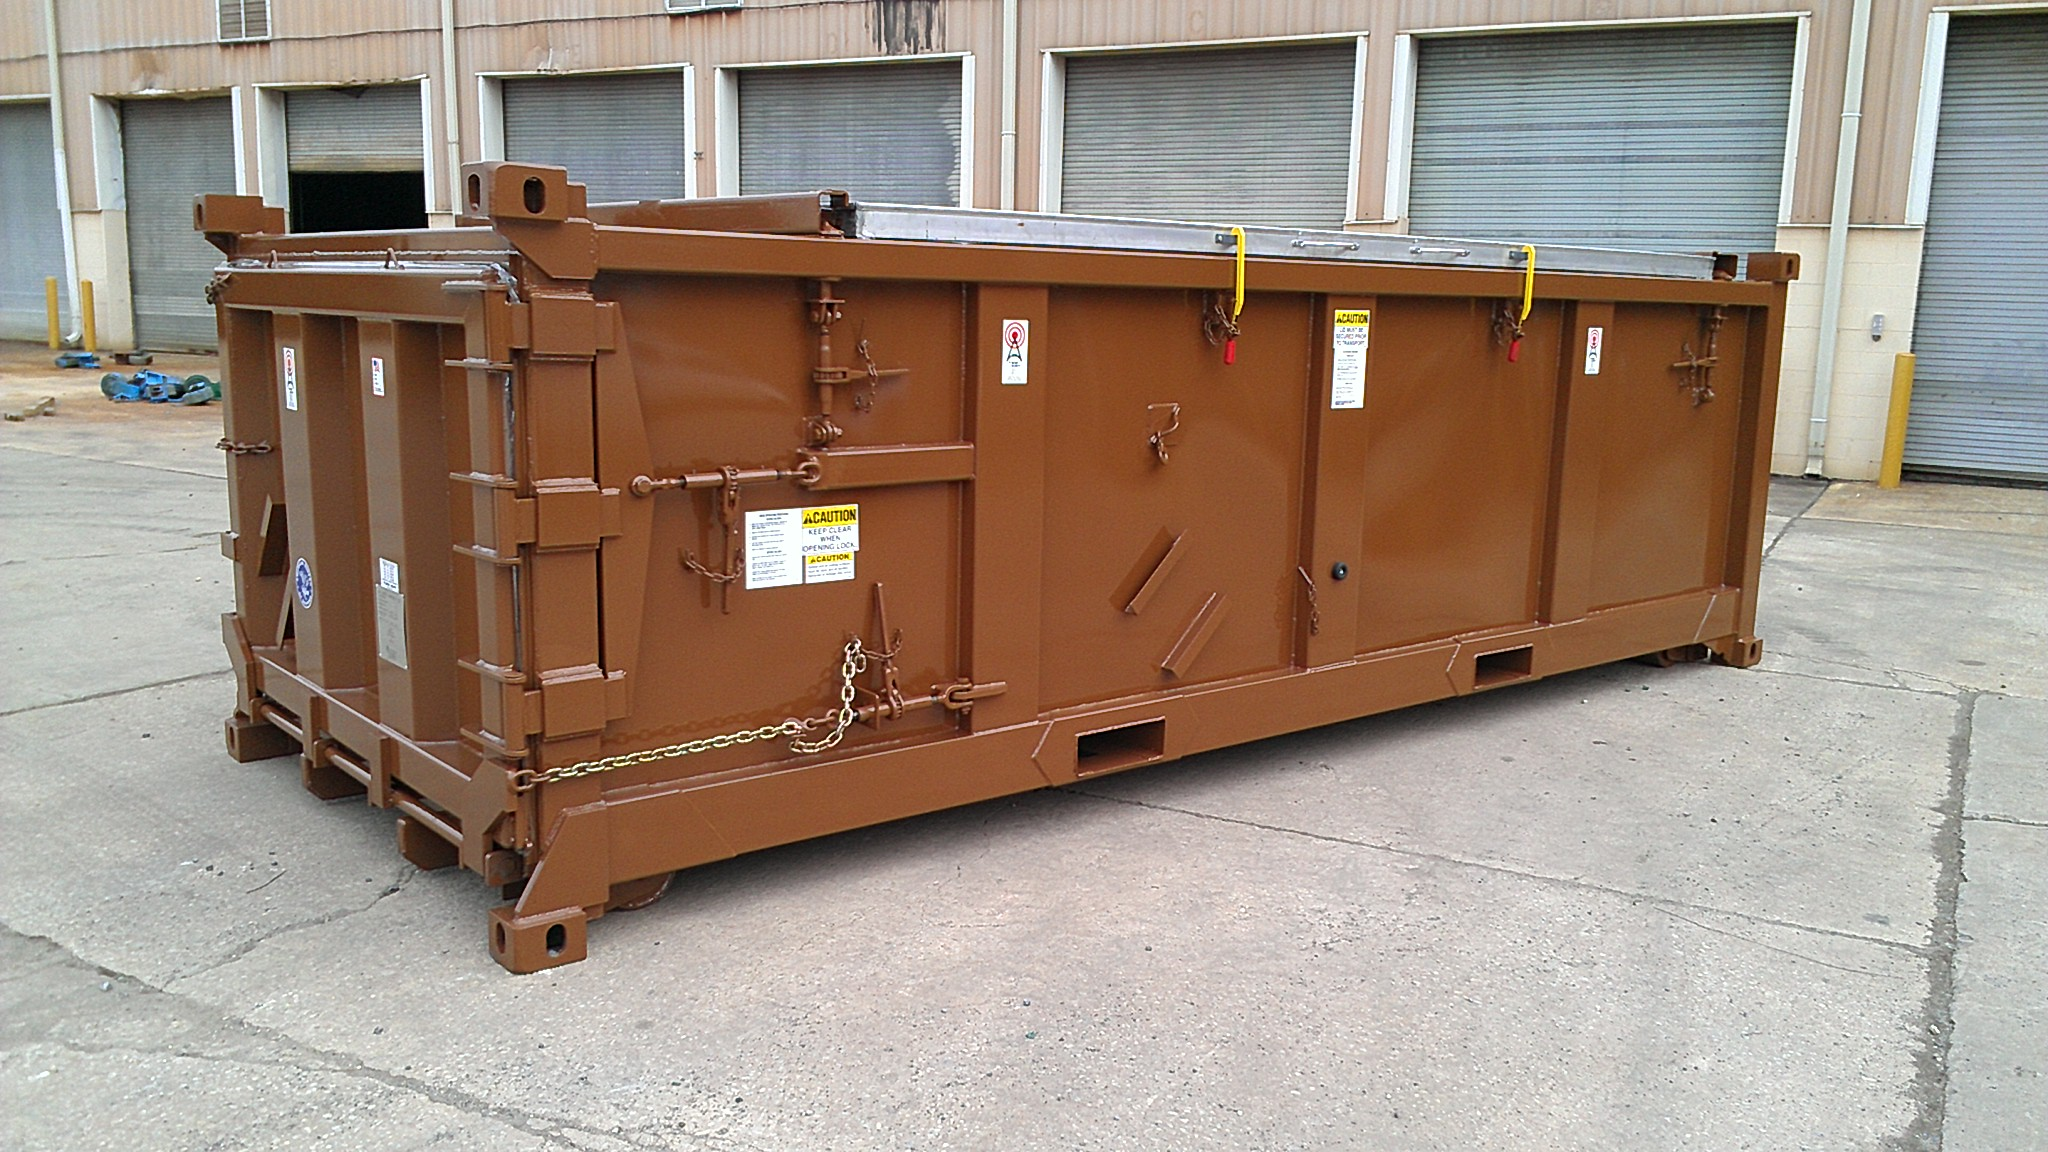 One of the city's five watertight shipping containers it purchased last year. The city is buying 40 more to transport sewage sludge. They cost about $20,000 each. (Photo courtesy CBJ Public Works Department)